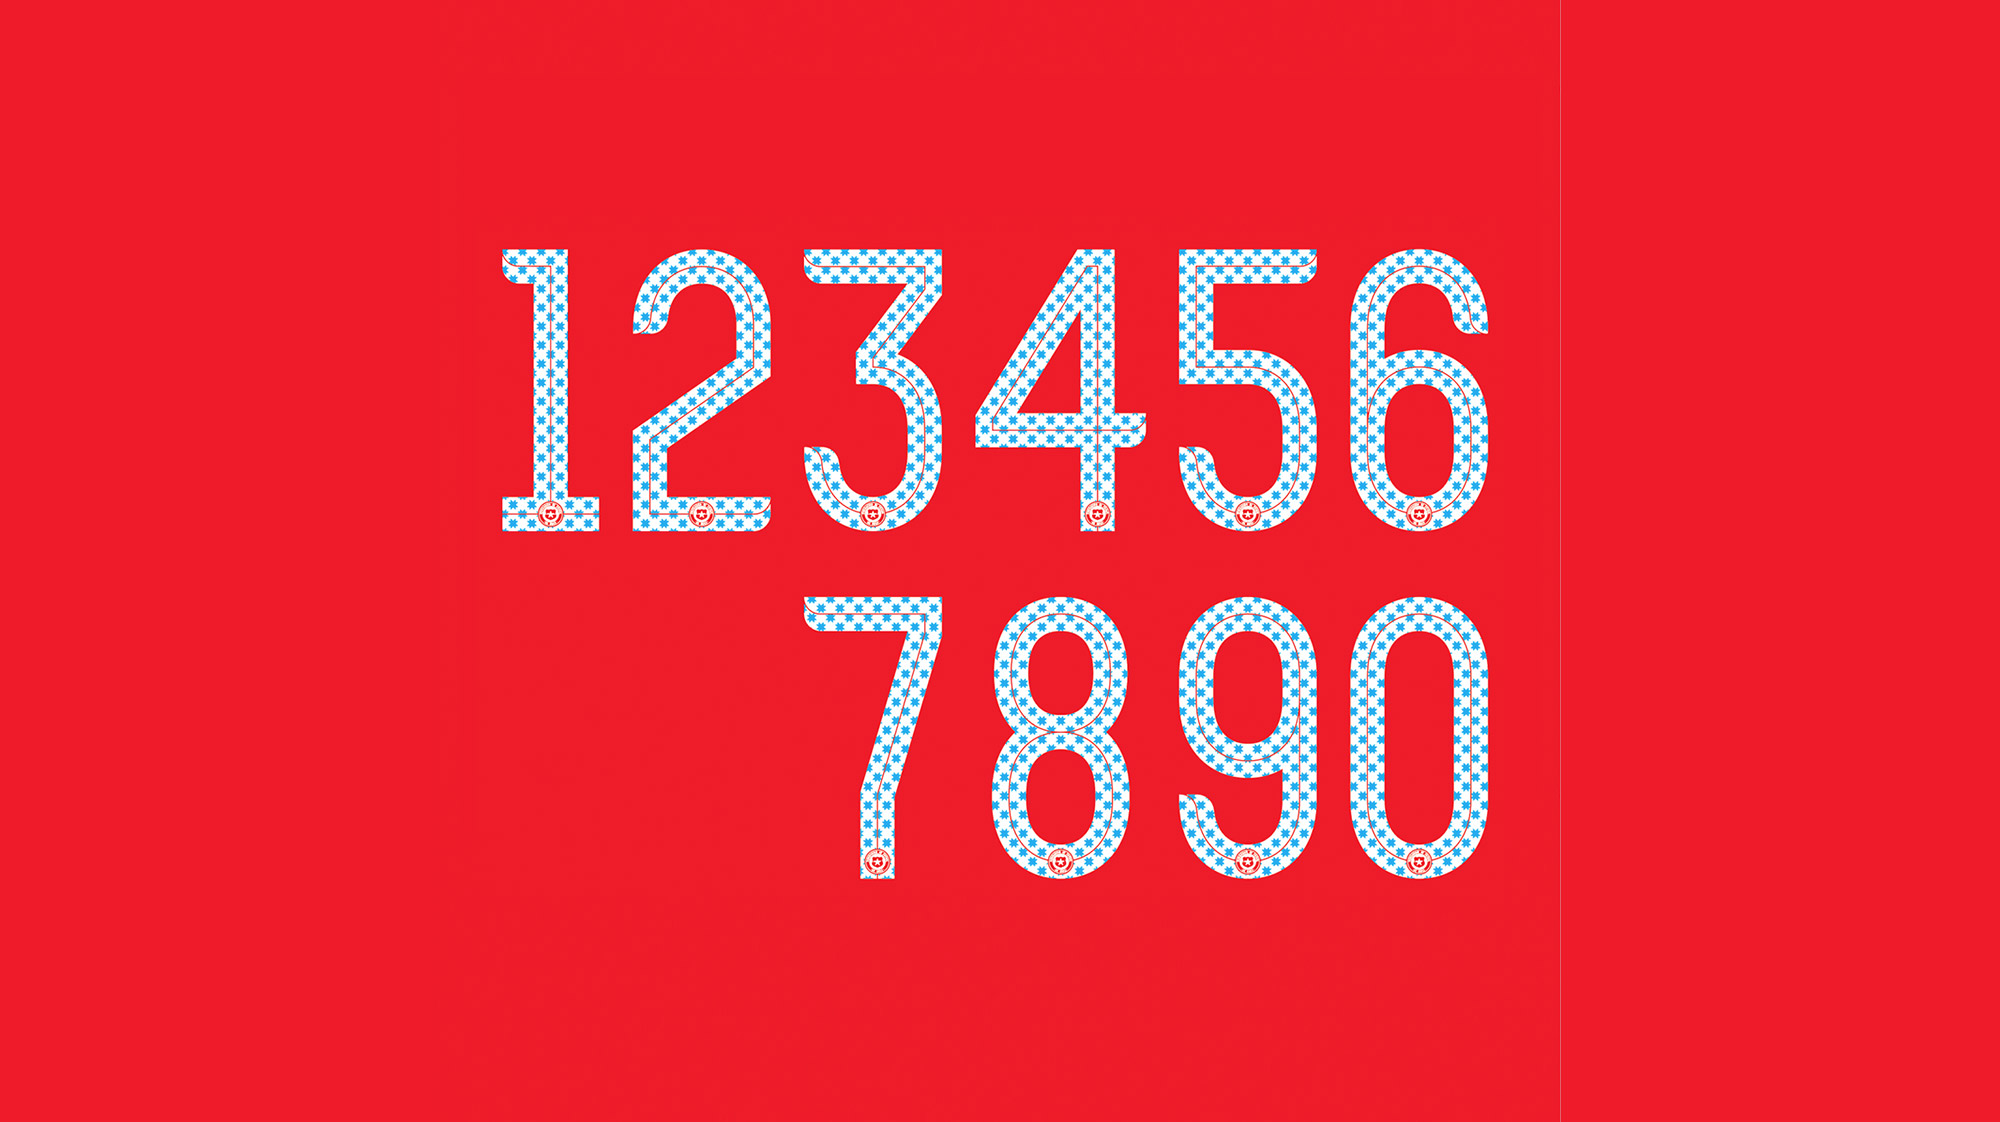 Nike-News-Chile-Soccer-Numbers_78490